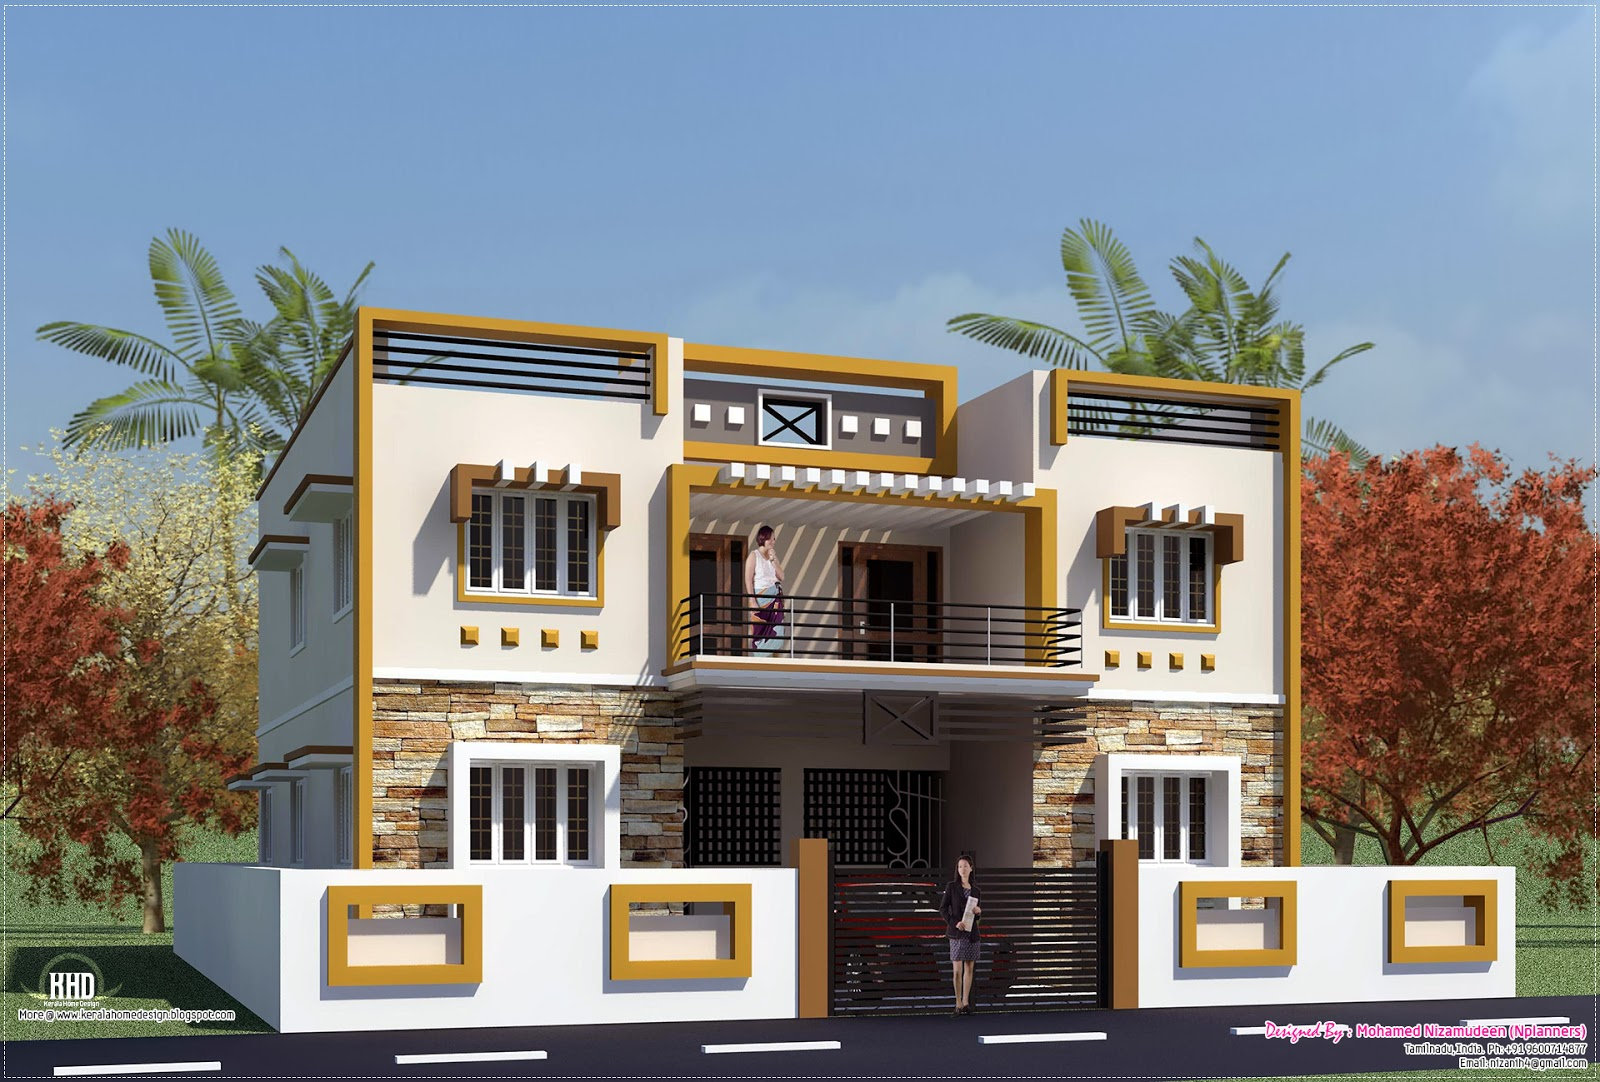 1850 Square Feet 172 Square Meter 205 Square Yards Designed By Mohamed